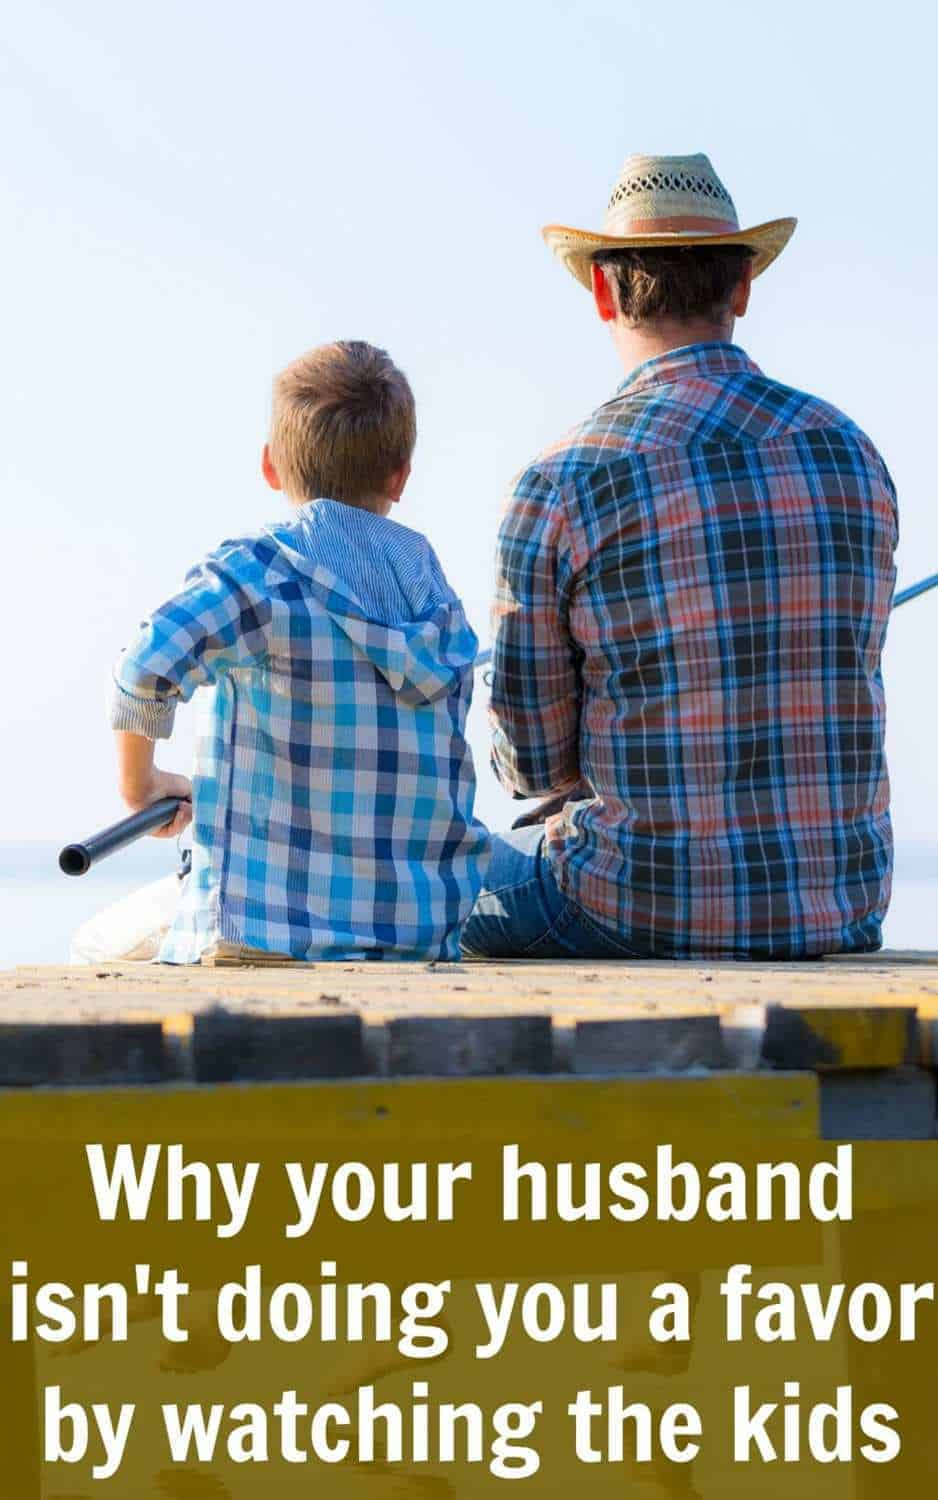 Why your husband is not doing you a favor by watching the kids